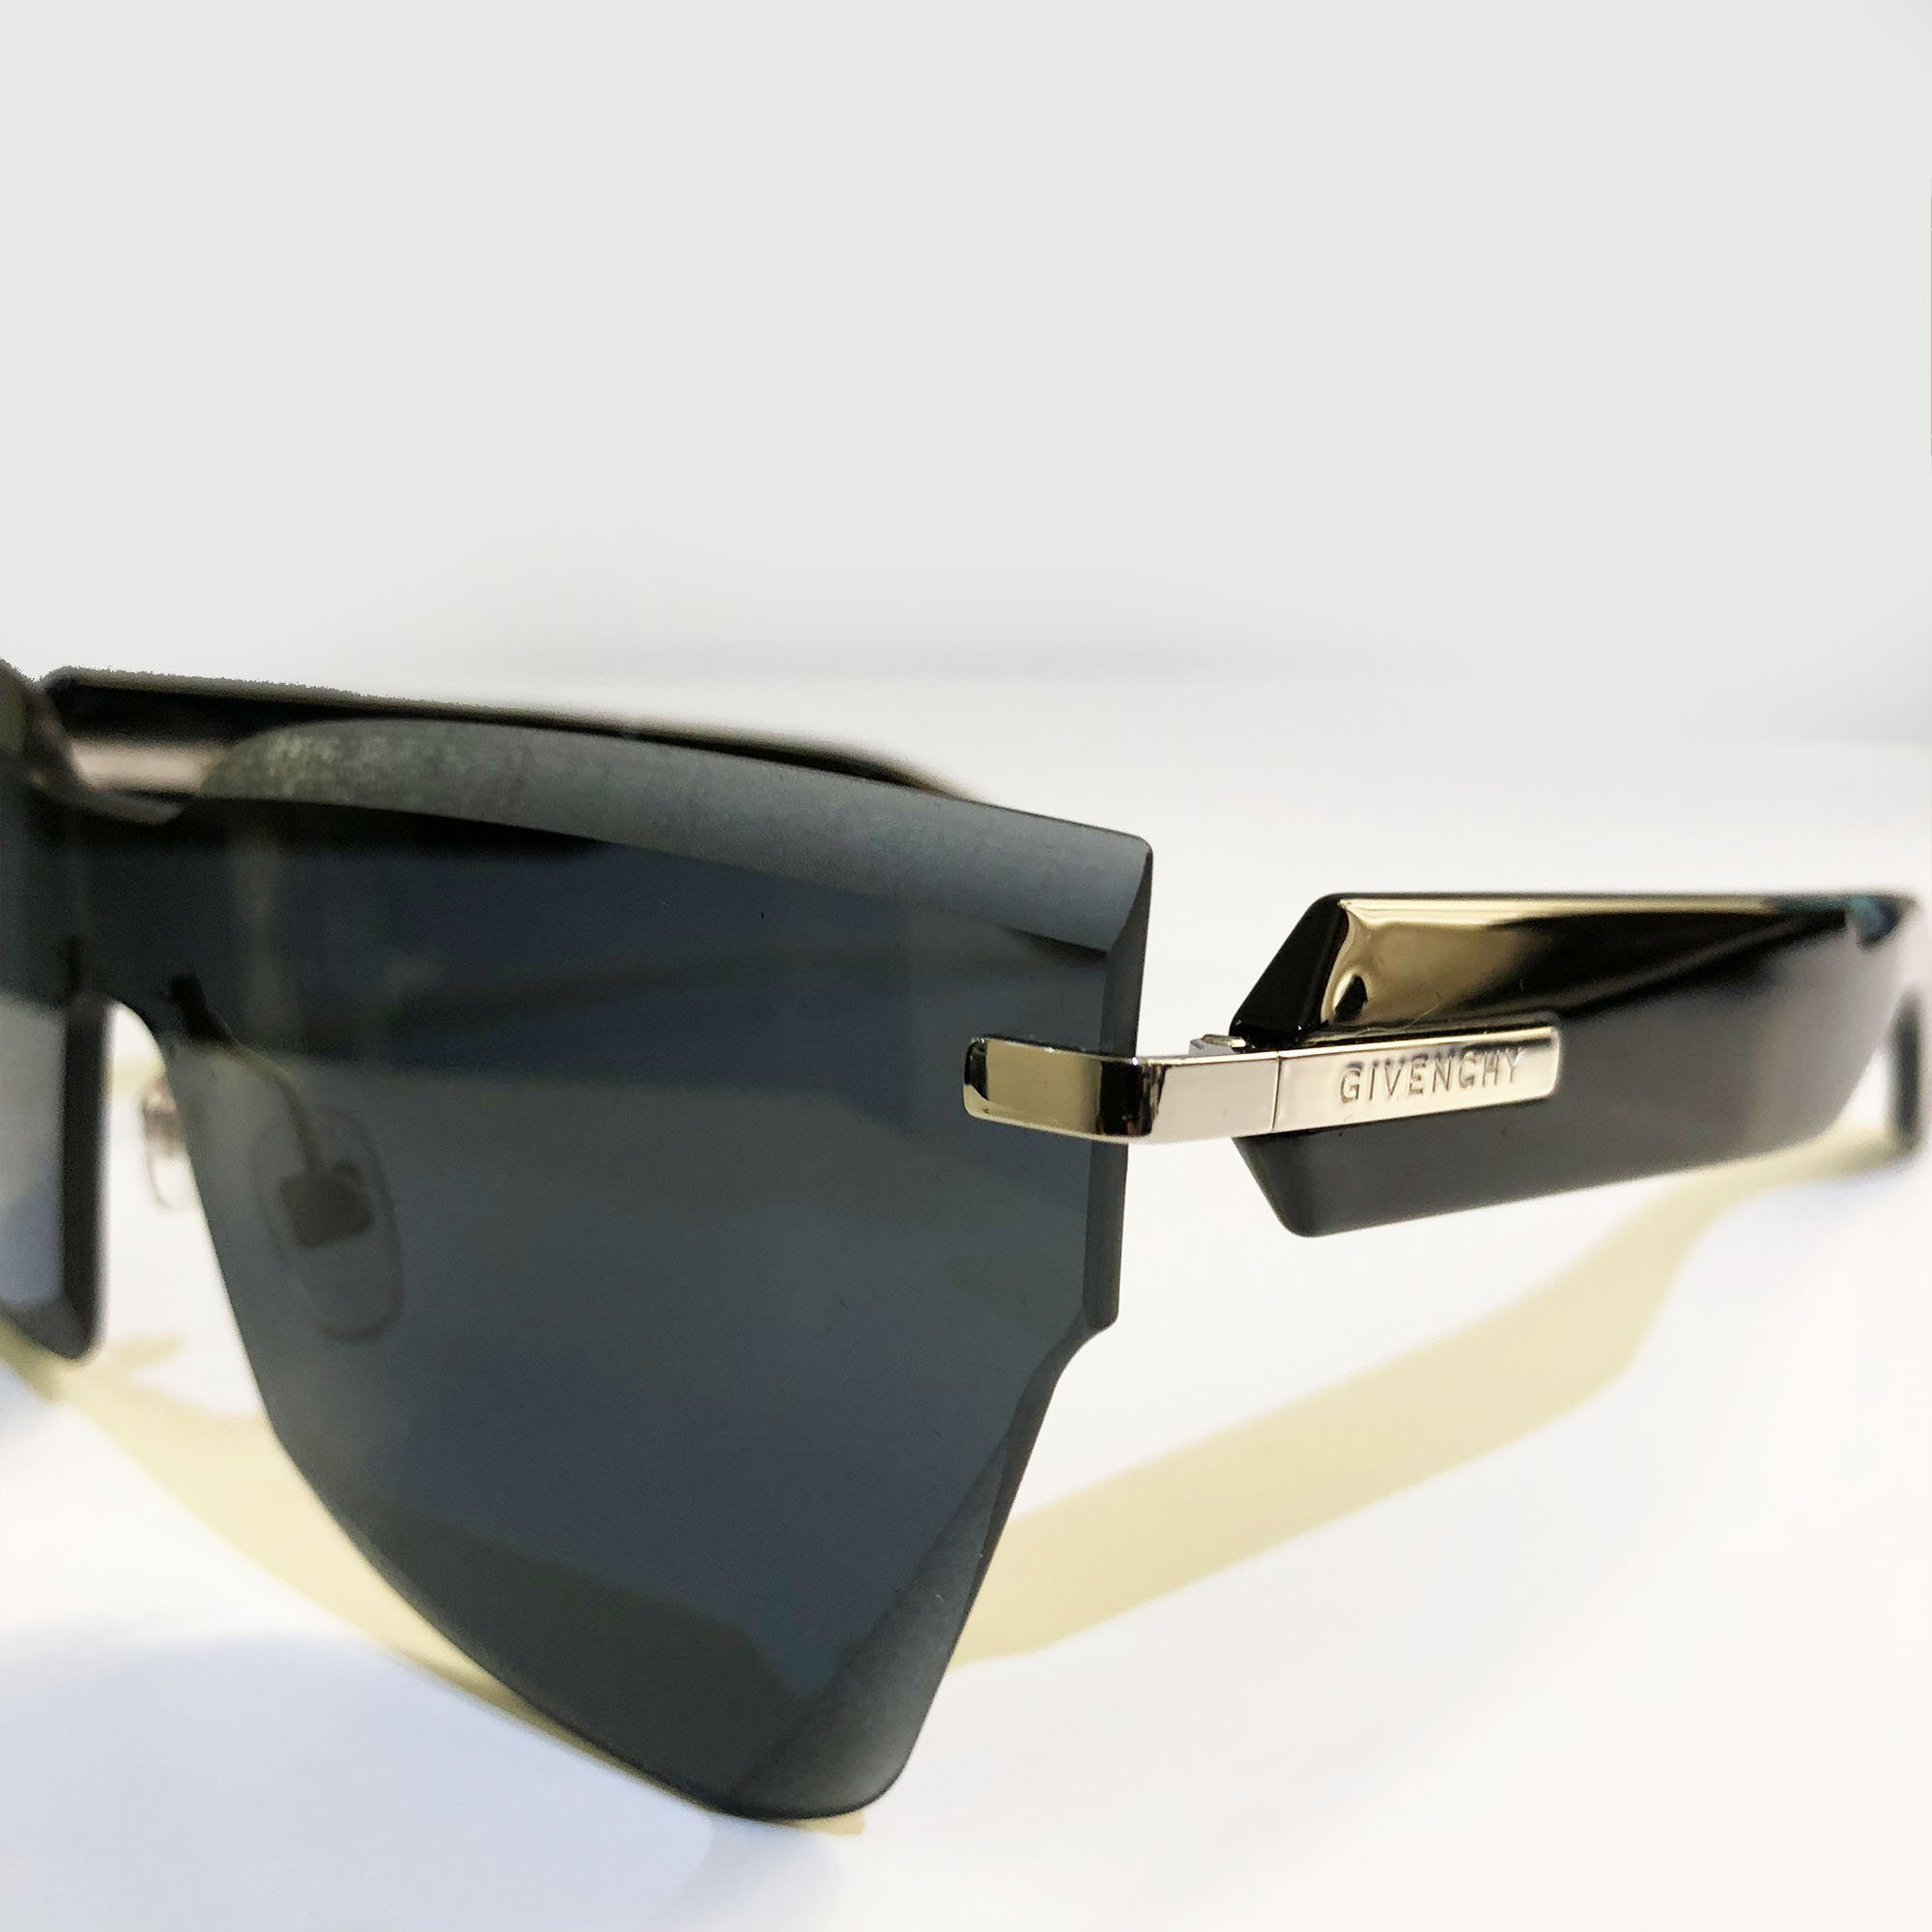 Givenchy Rimless Acetate Sunglasses